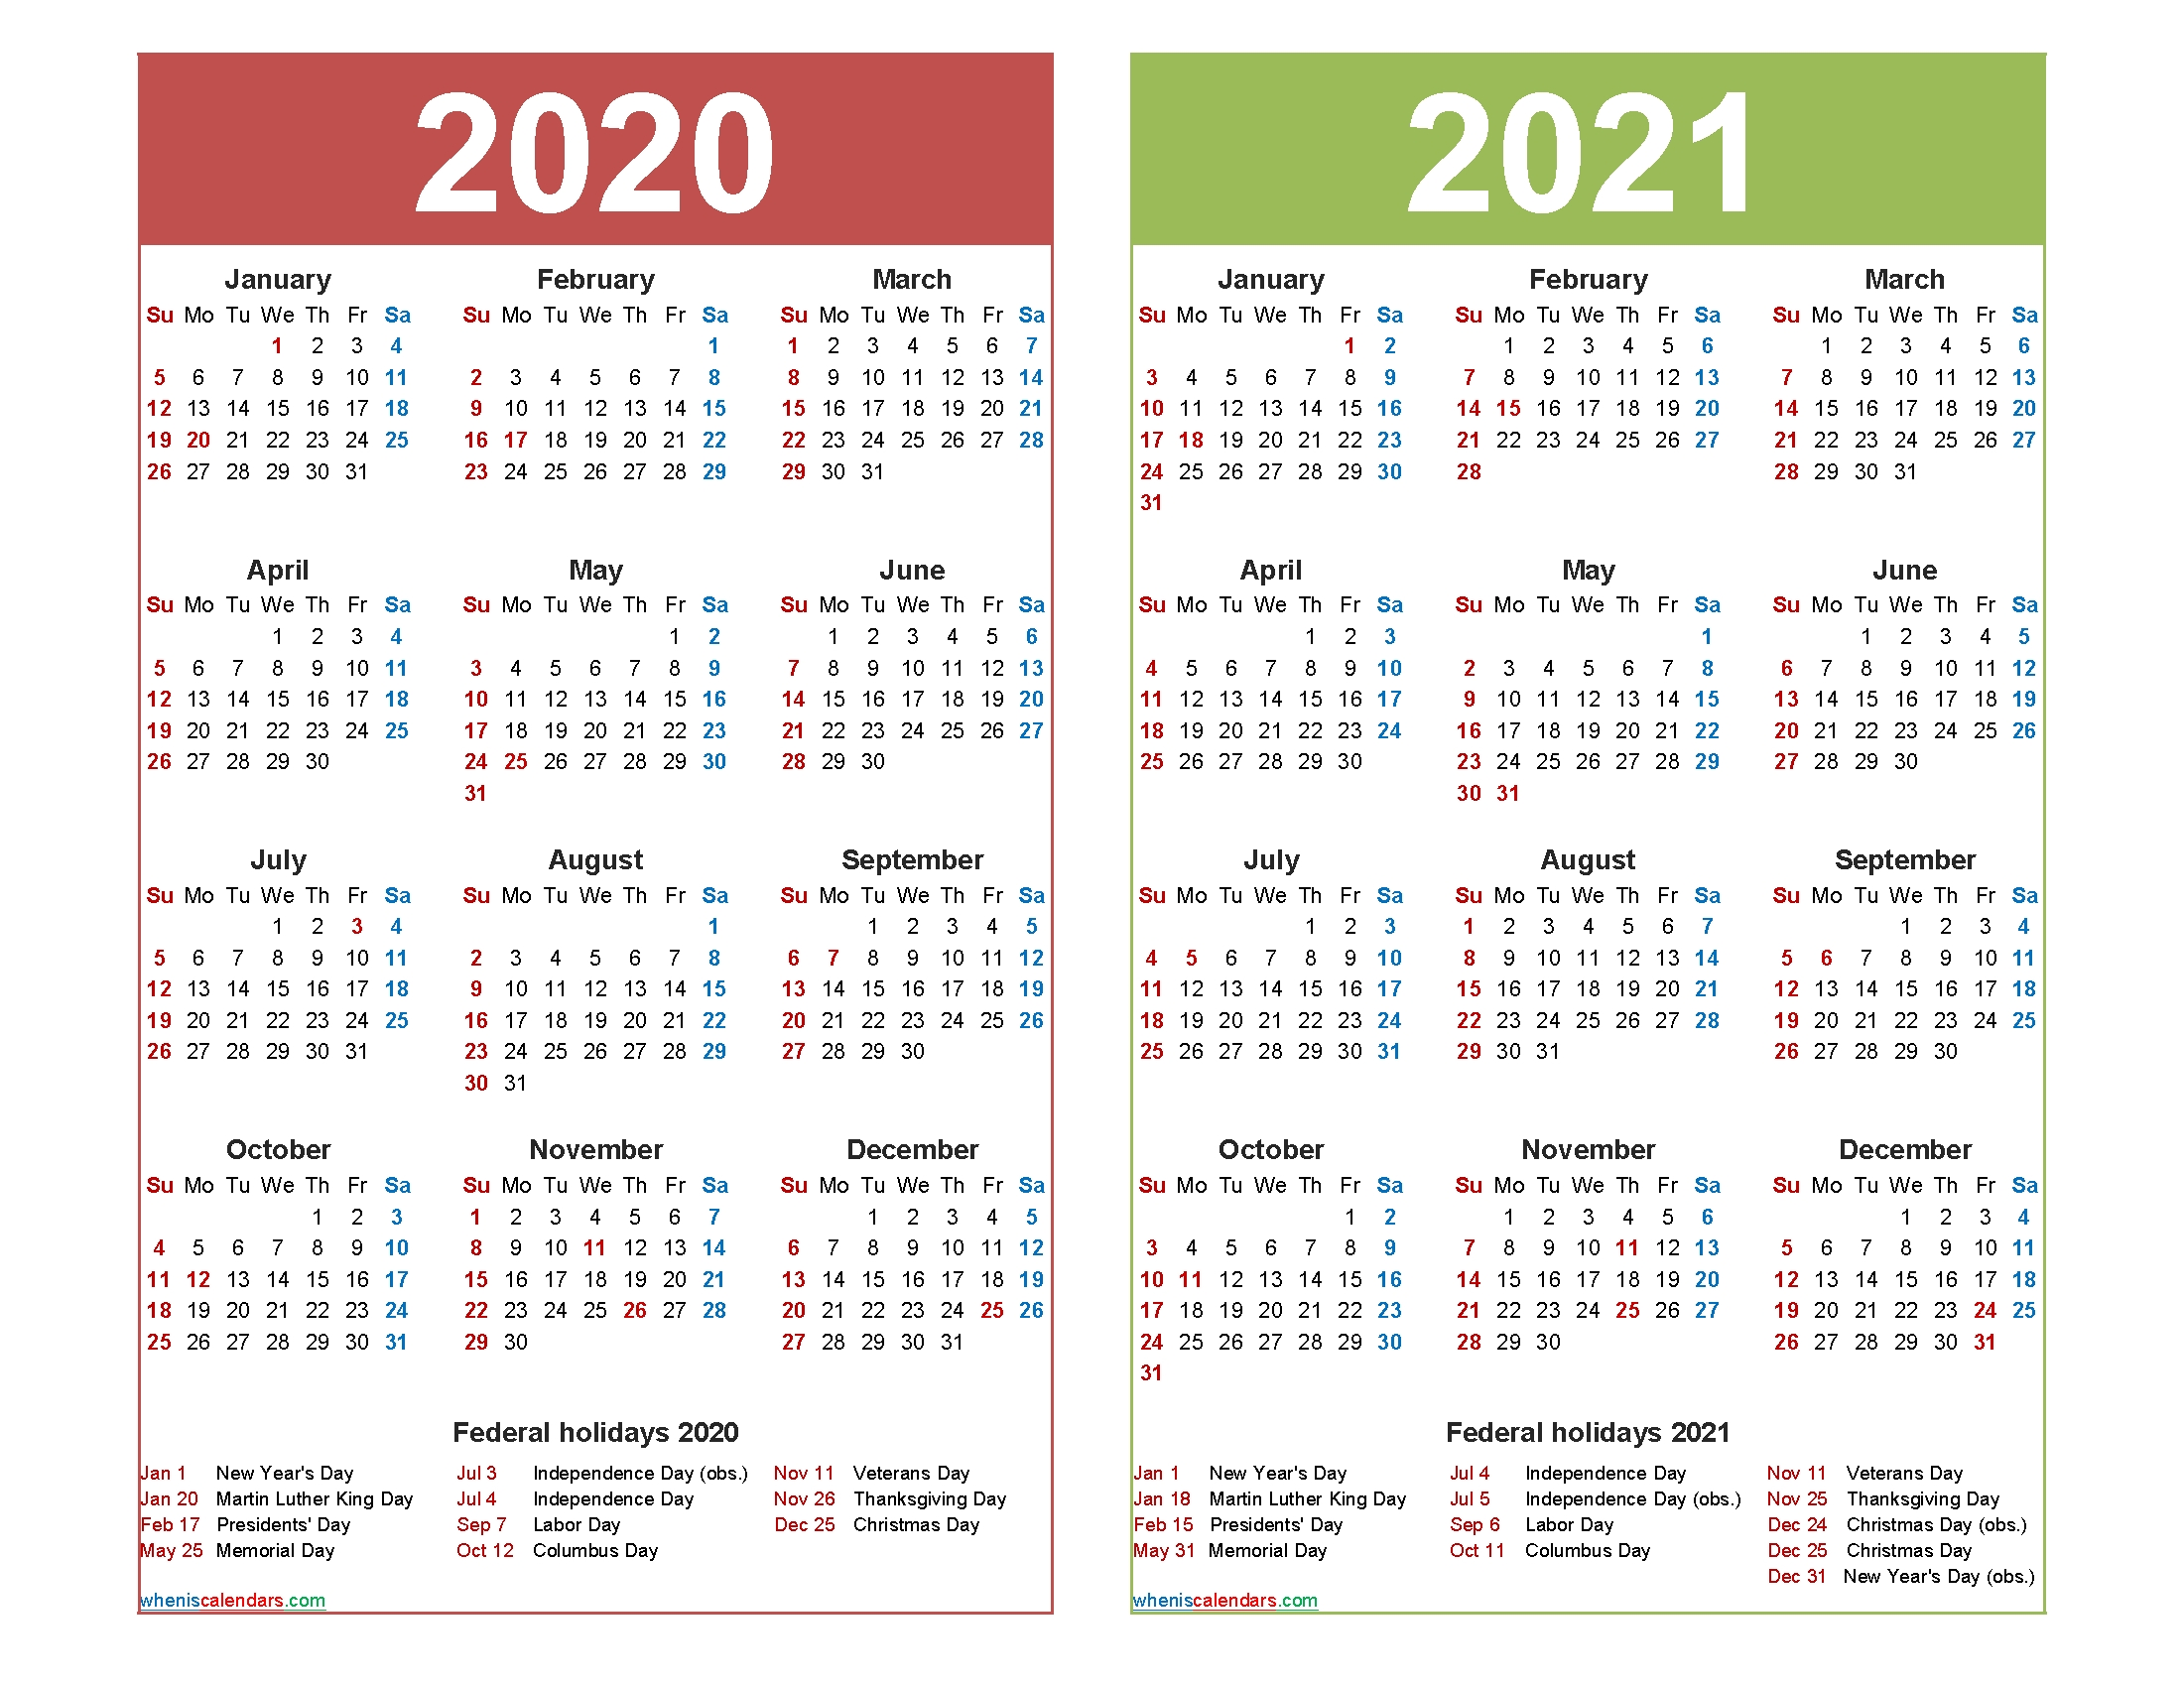 Free 2020 And 2021 Calendar Printable With Holidays – Free  Printable 12 Month 2020 2021 Calendar